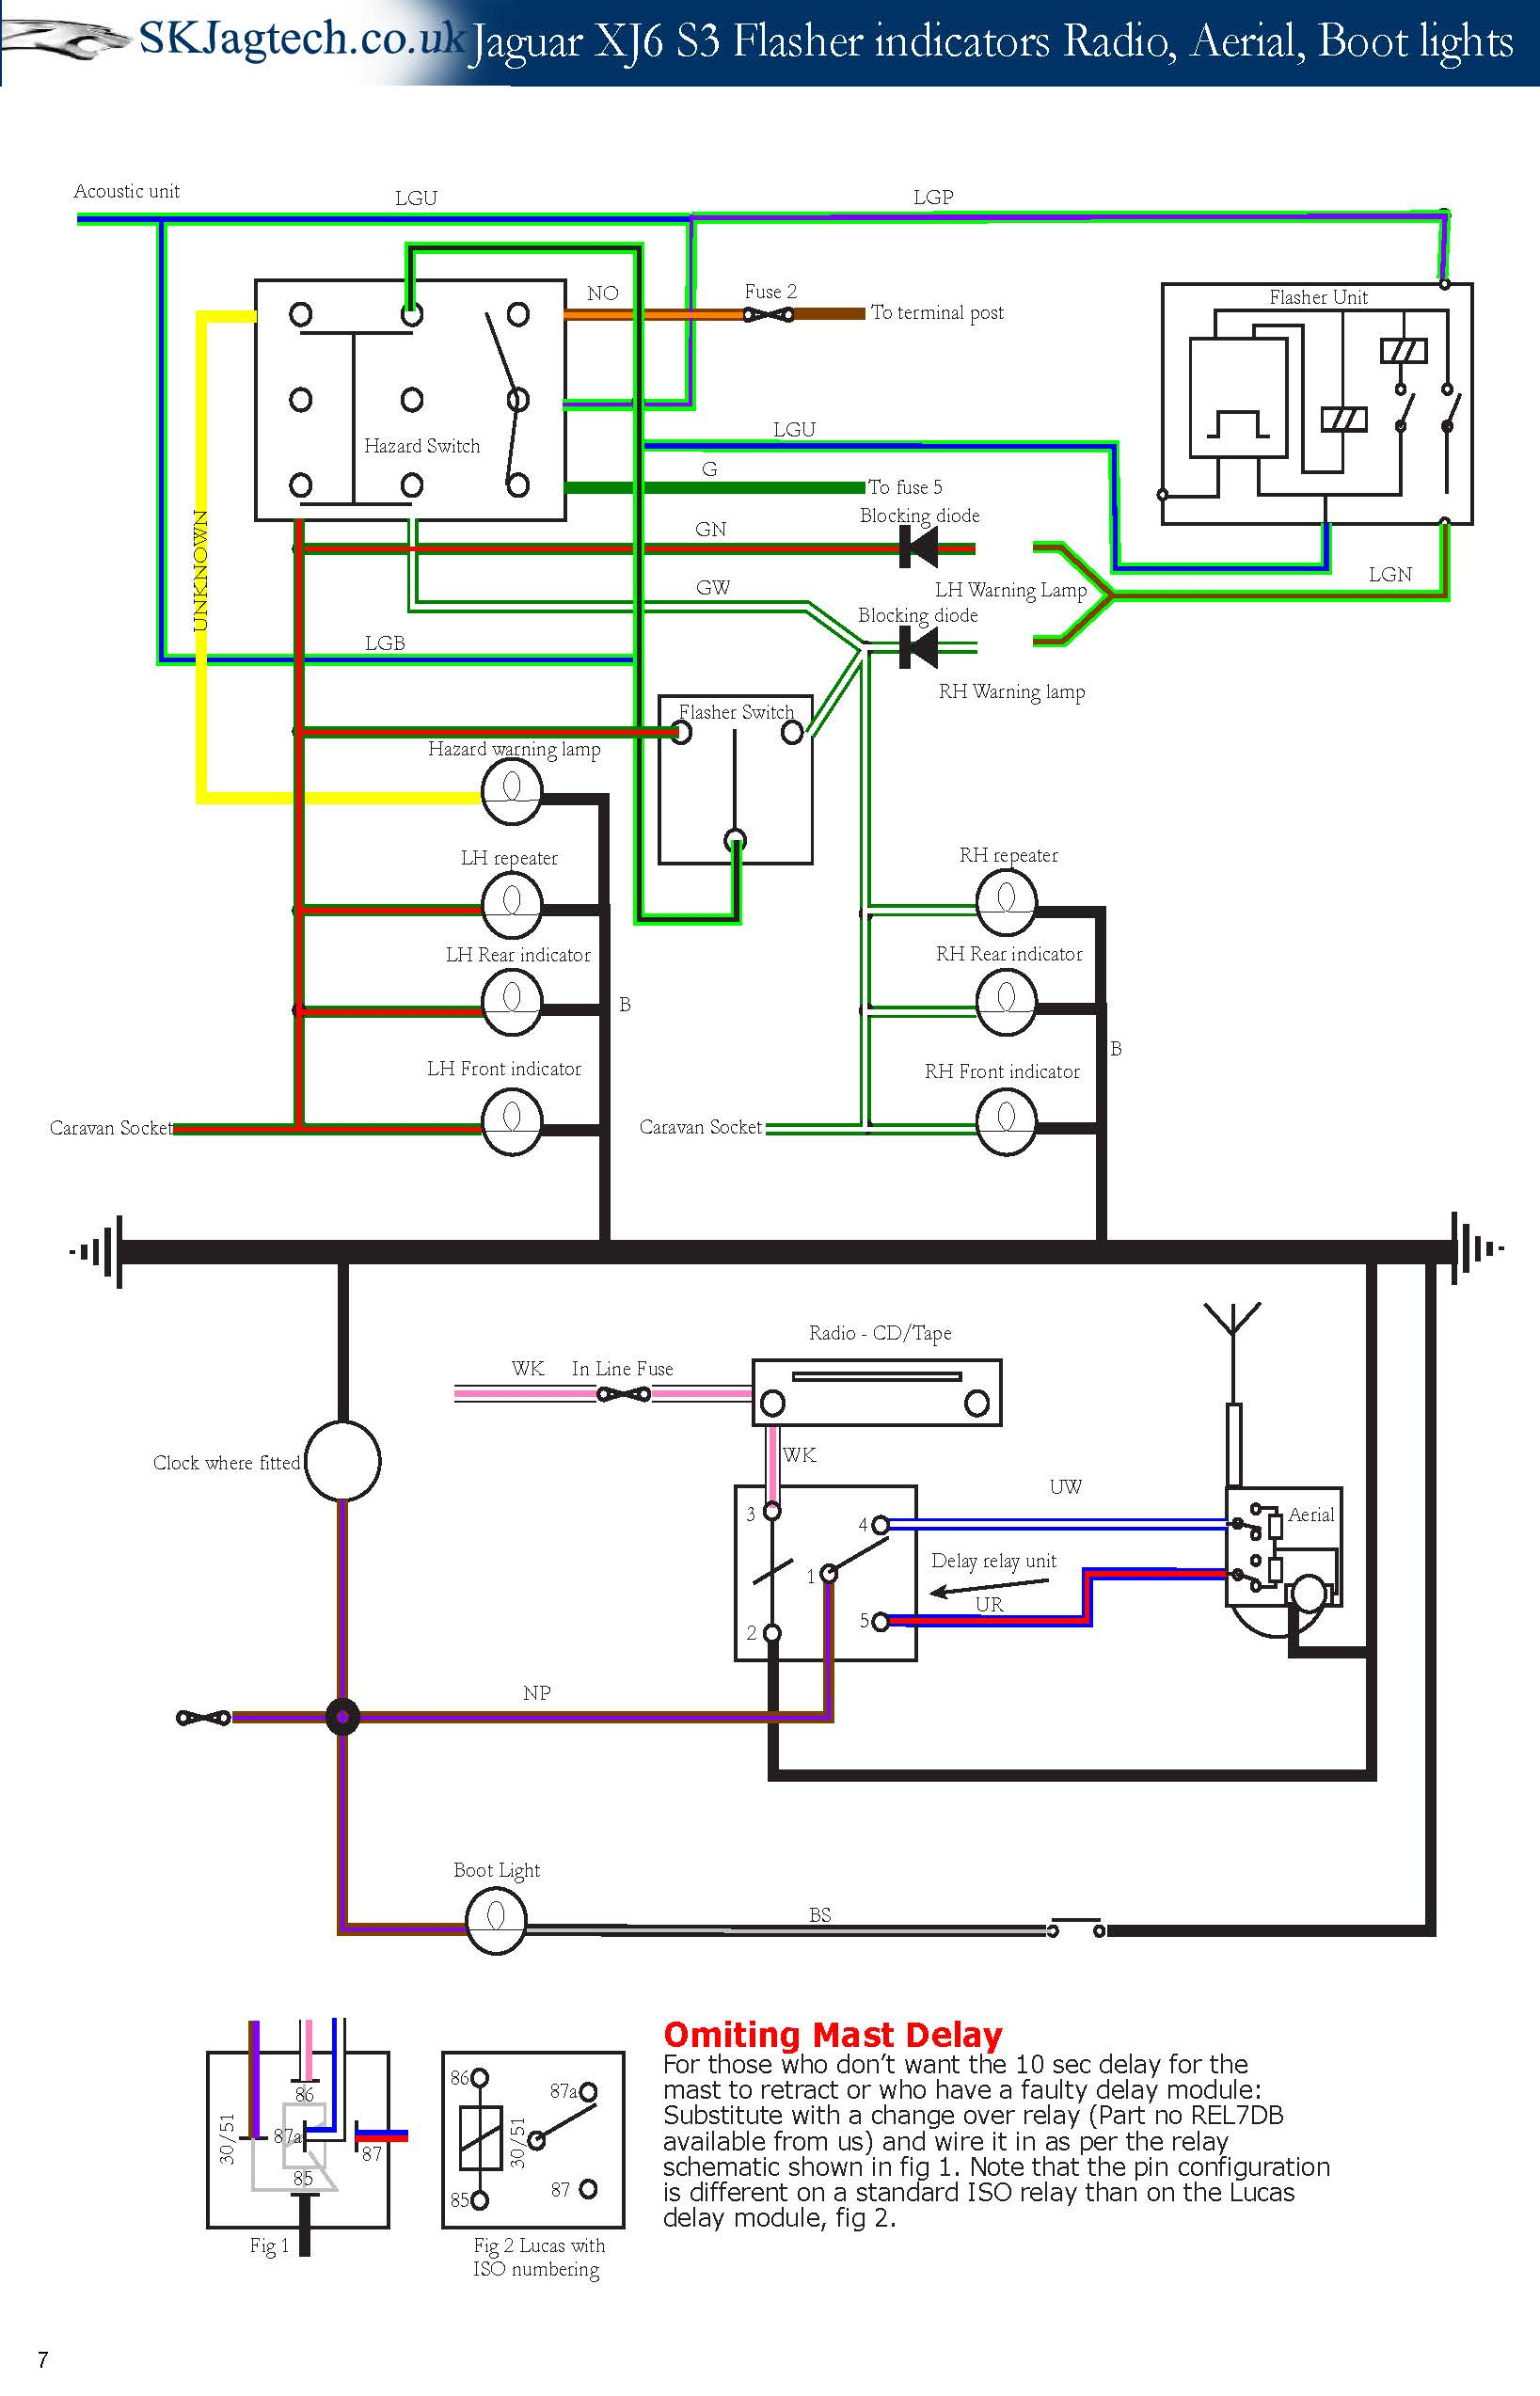 wiring for xj12 s2 antenna - xj - jag-lovers forums xj12 wiring diagram 1978 chevy truck wiring diagram jag-lovers forums